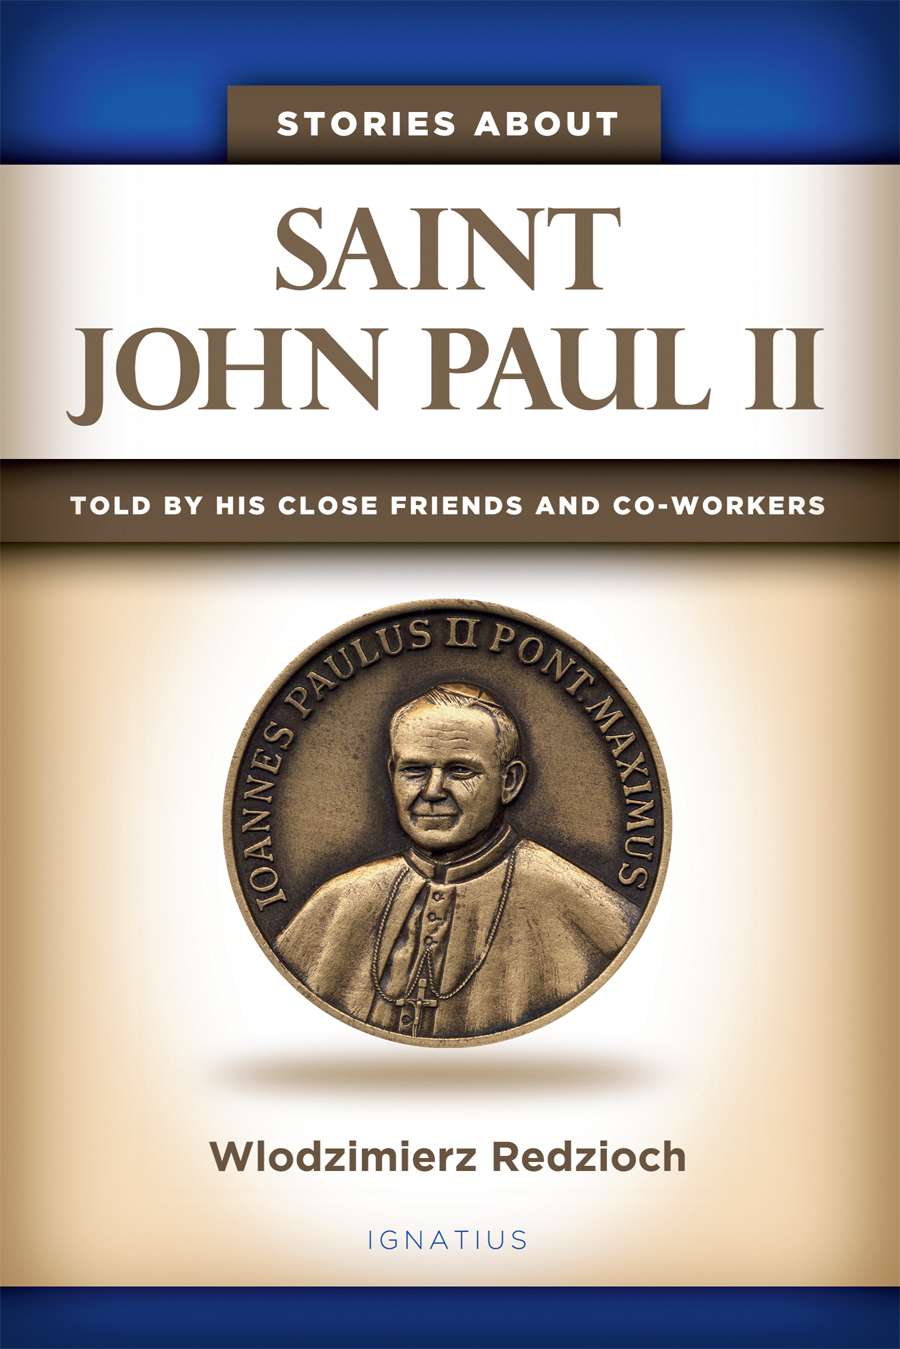 Stories about Saint John Paul II